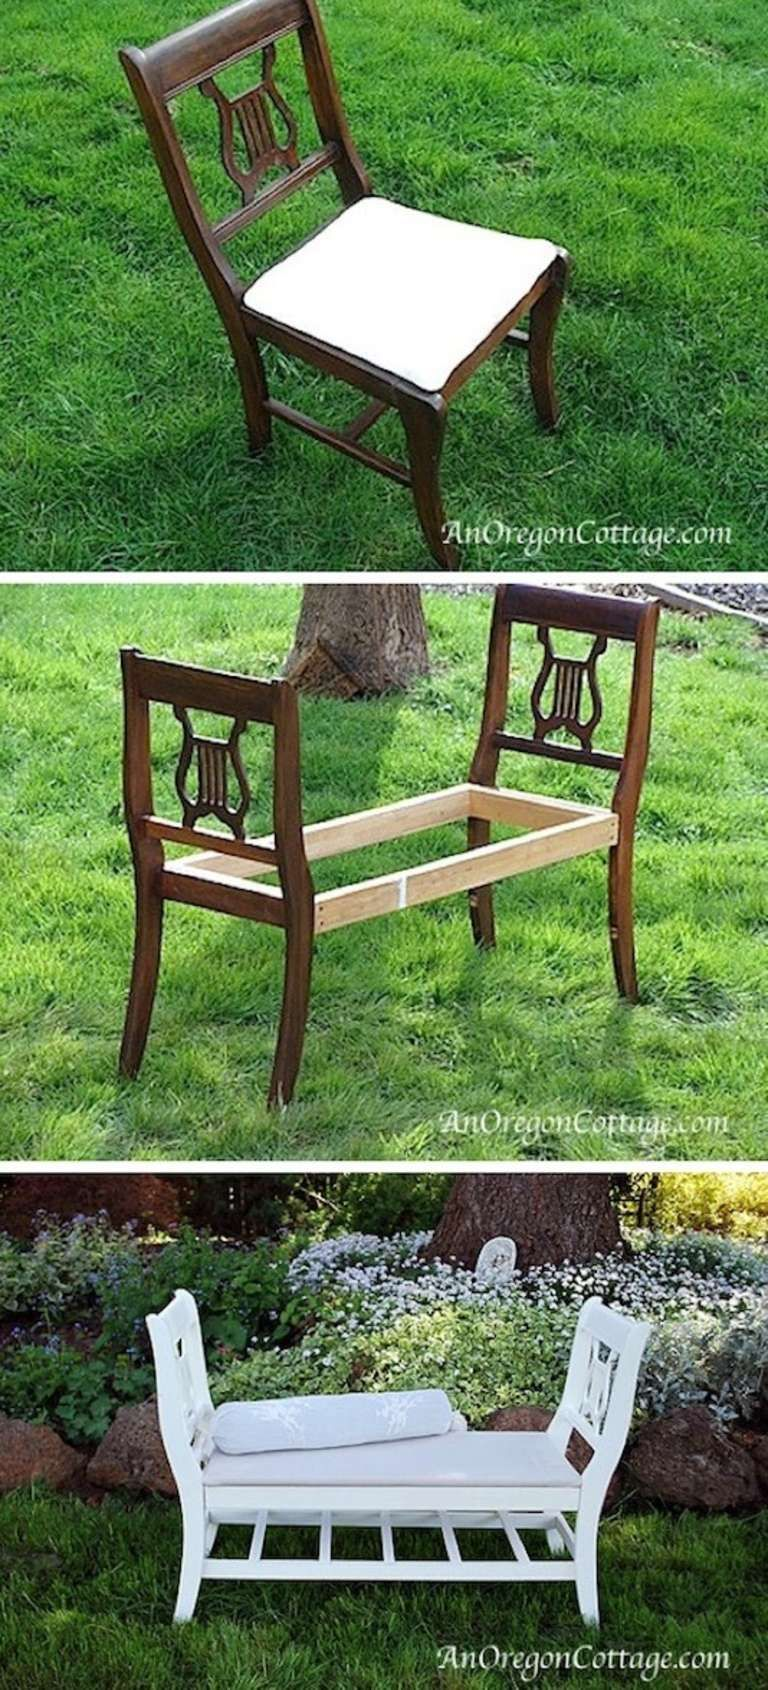 Super Turn Your Old Dining Room Chairs Into A Bench More Clever Unemploymentrelief Wooden Chair Designs For Living Room Unemploymentrelieforg